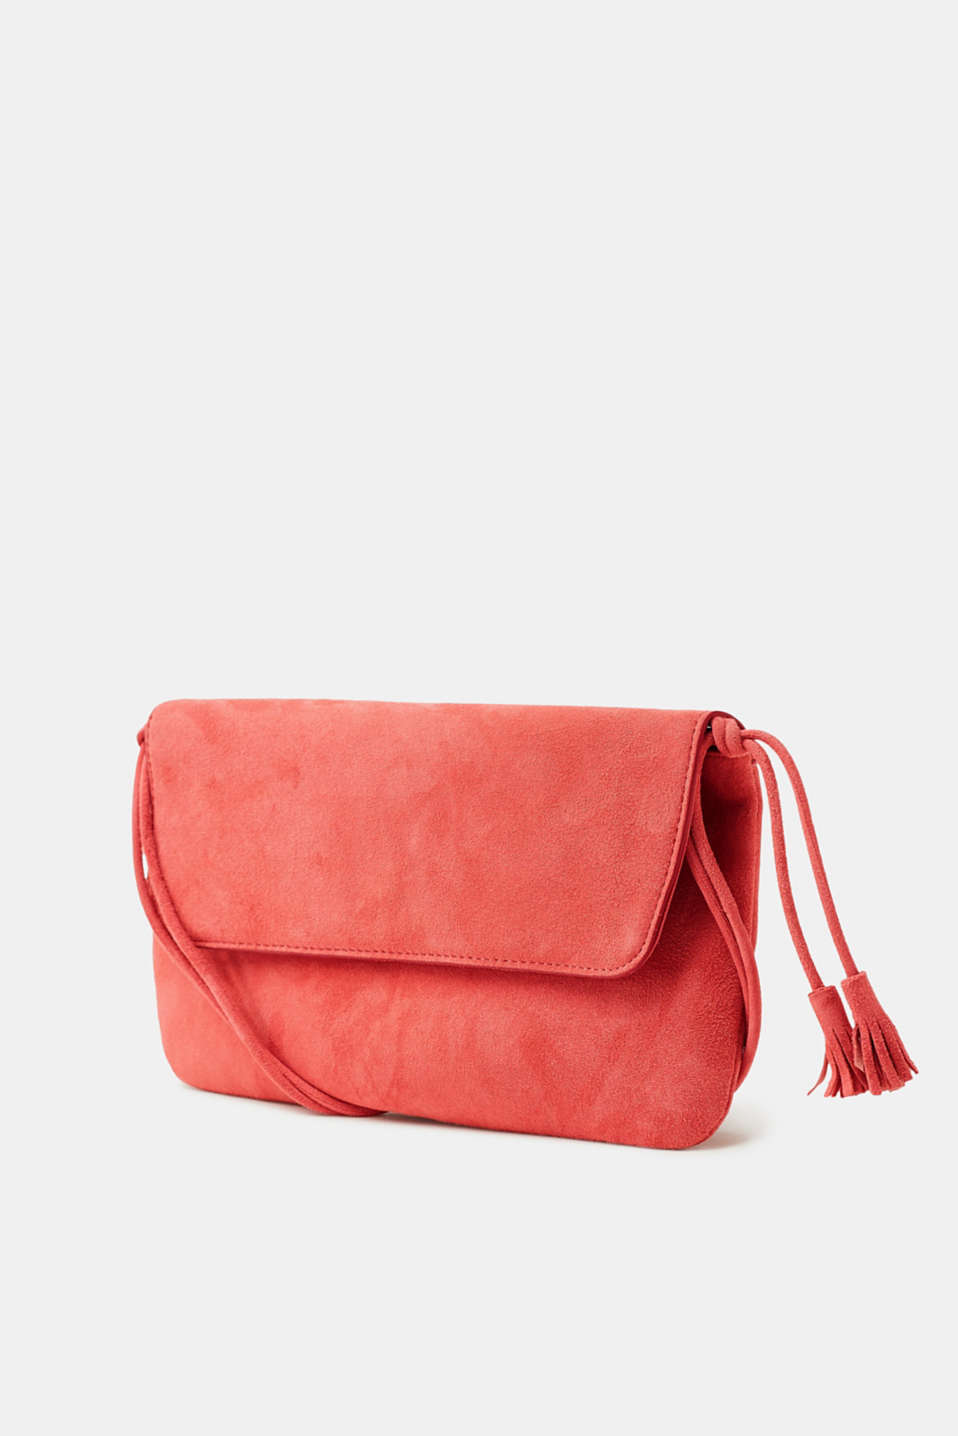 Esprit - Clutch bag in kid leather